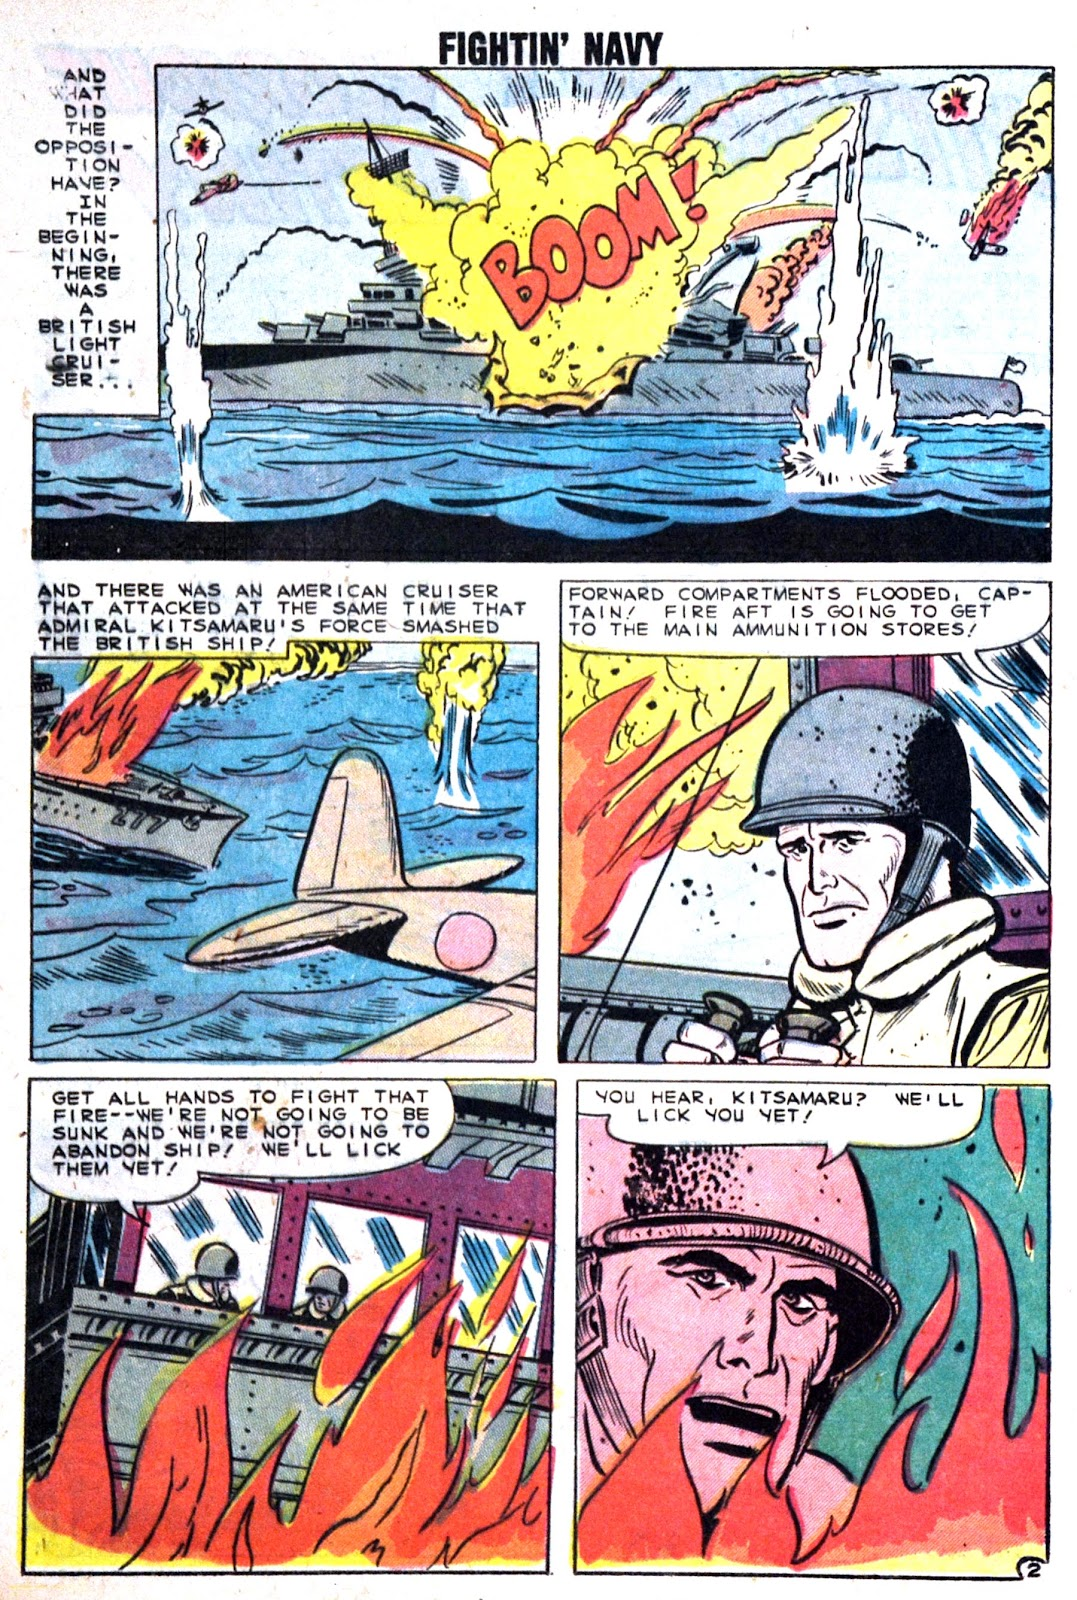 Read online Fightin' Navy comic -  Issue #89 - 20